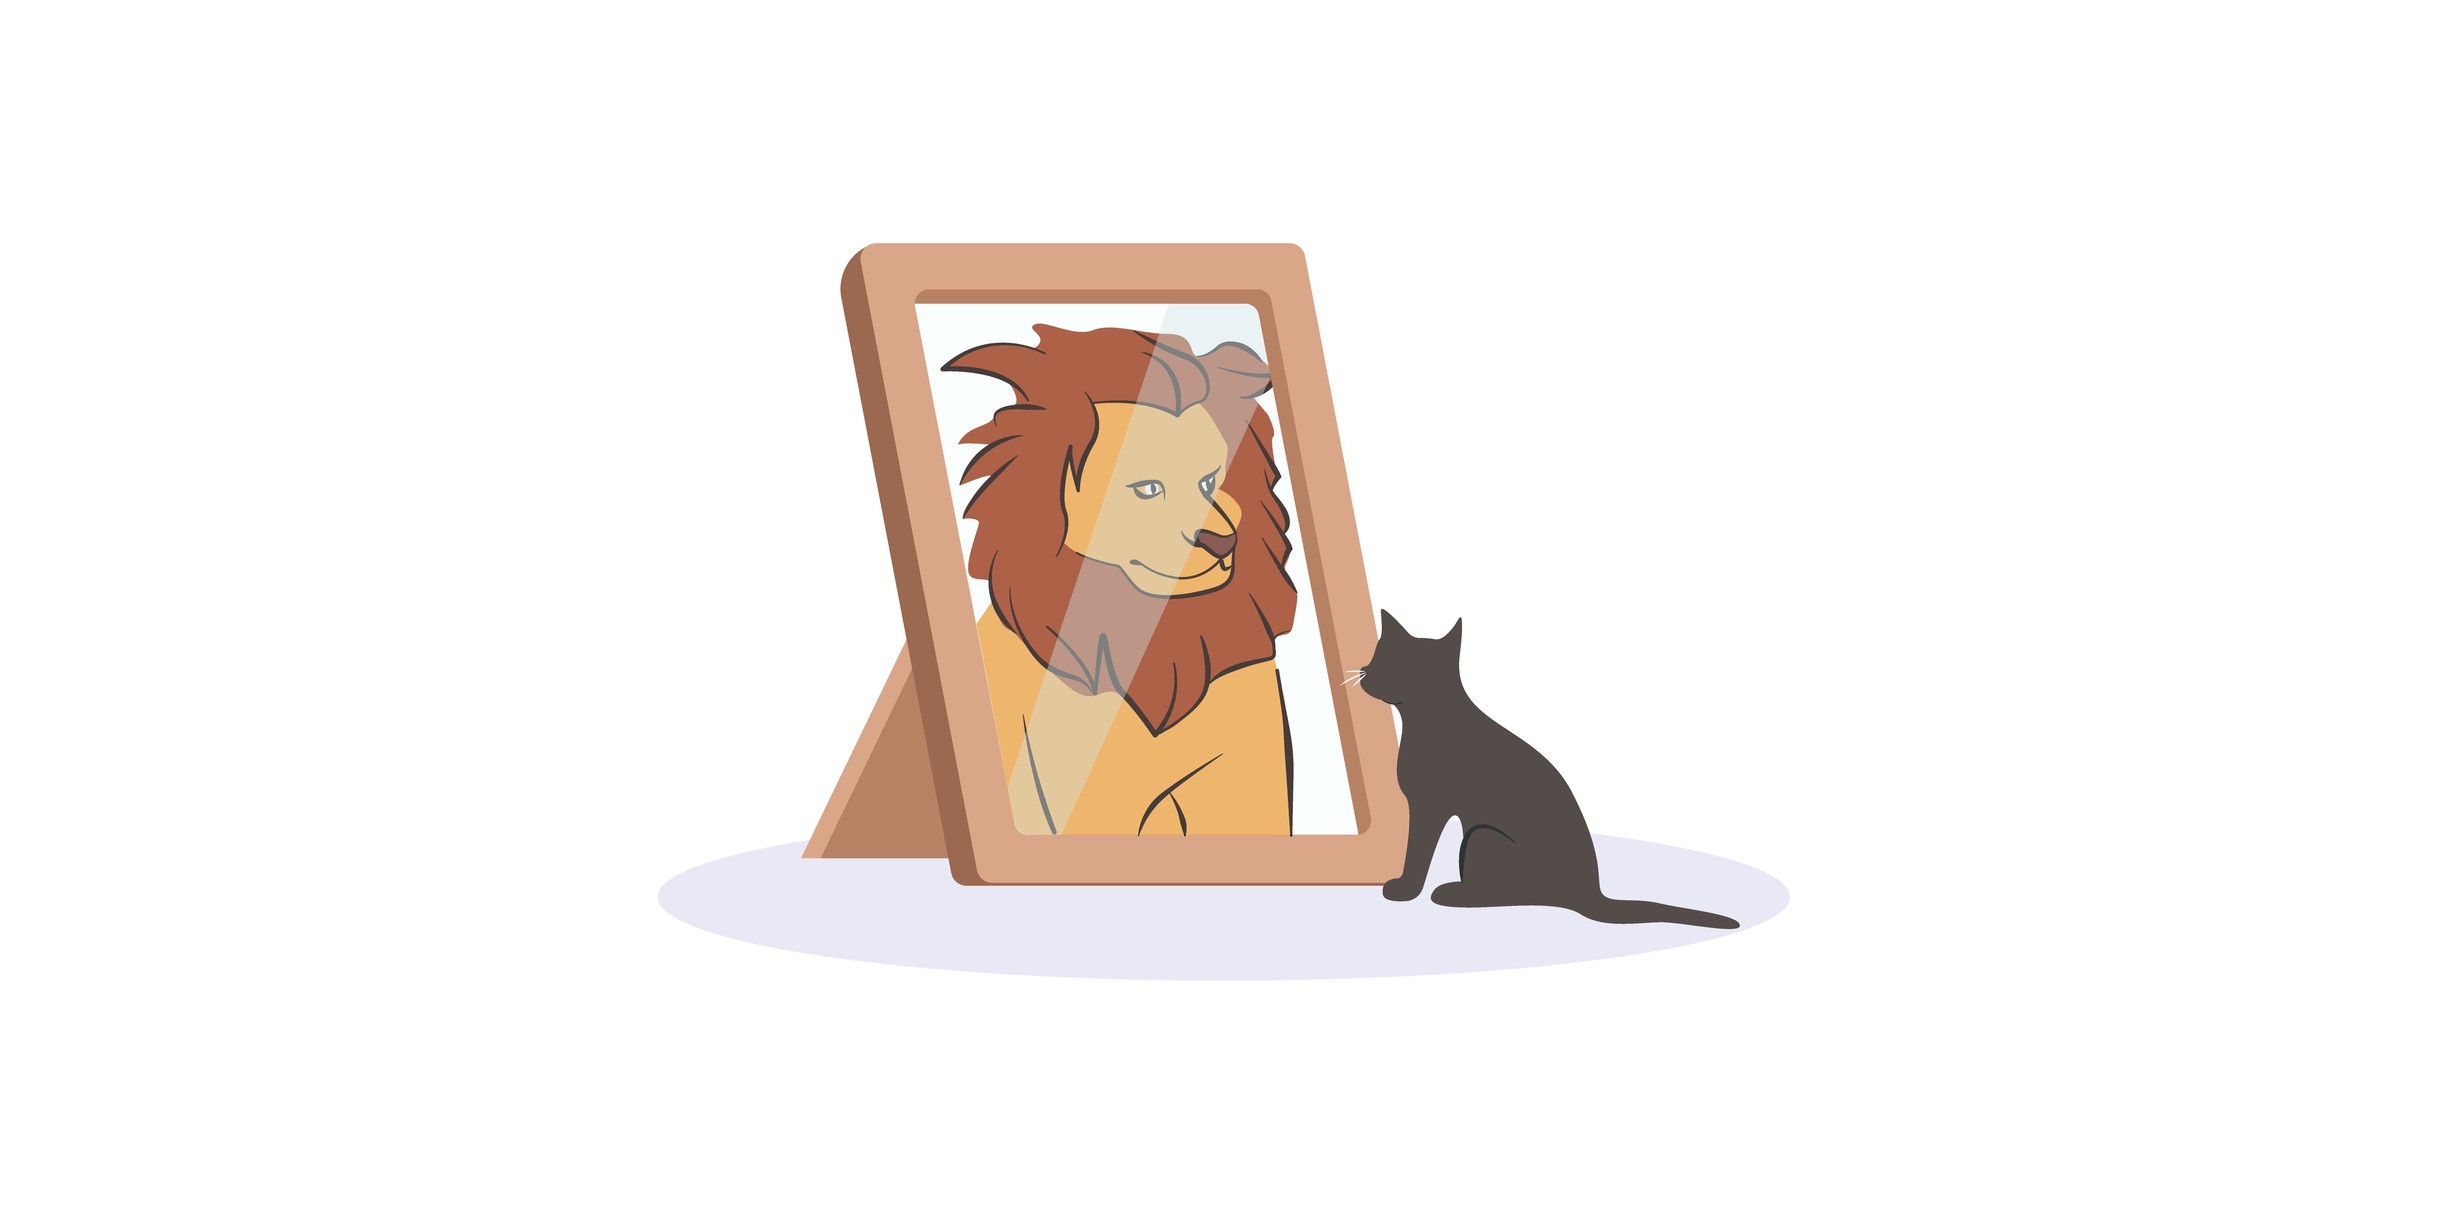 A cat looking into a mirror and seeing itself as a lion.